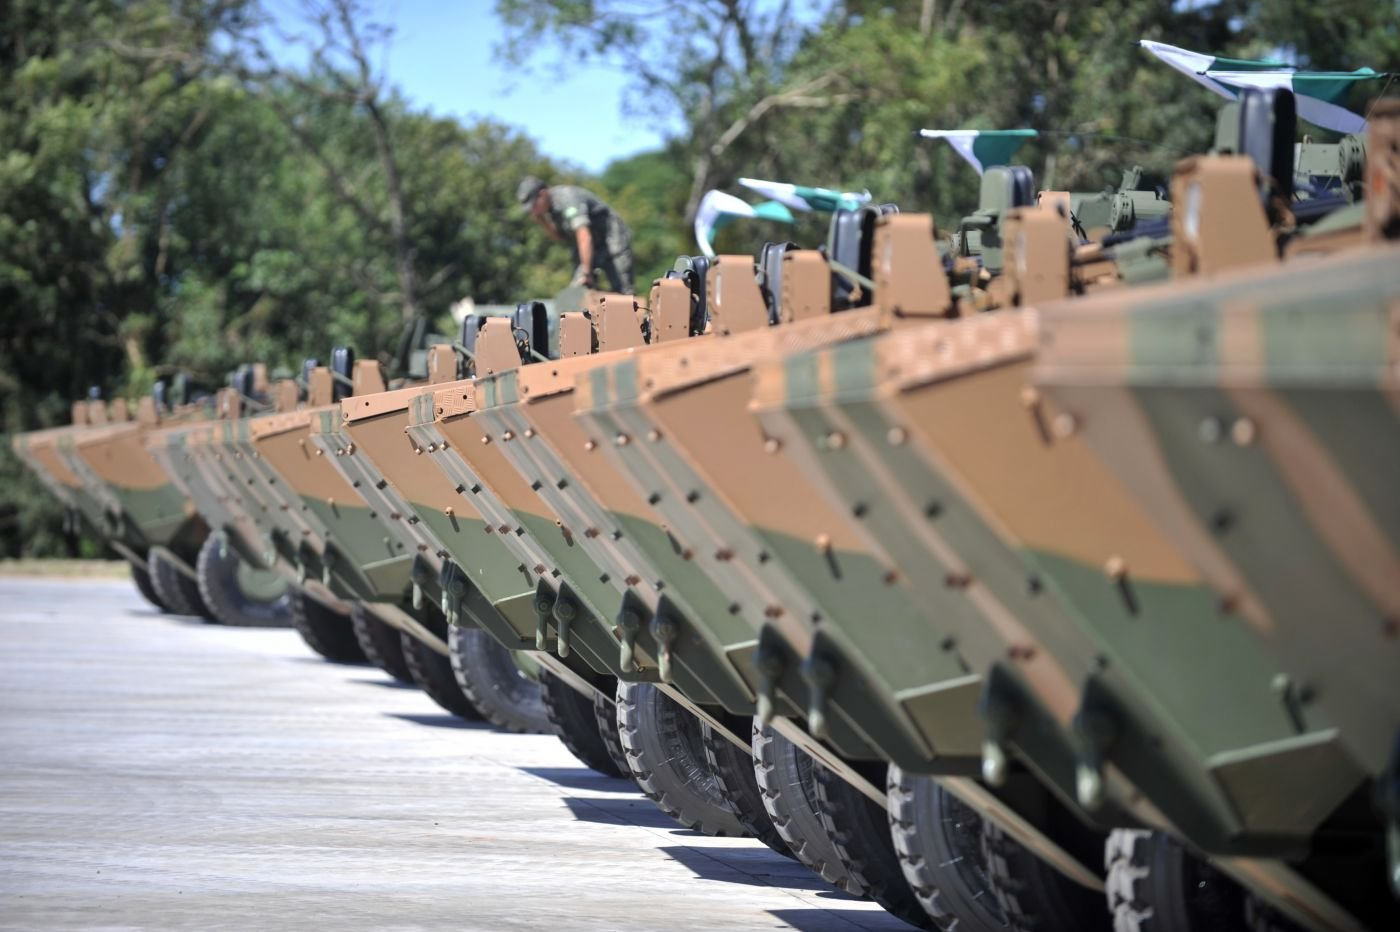 Brazilian Army Modernizes Its Fleet of Armored Vehicles